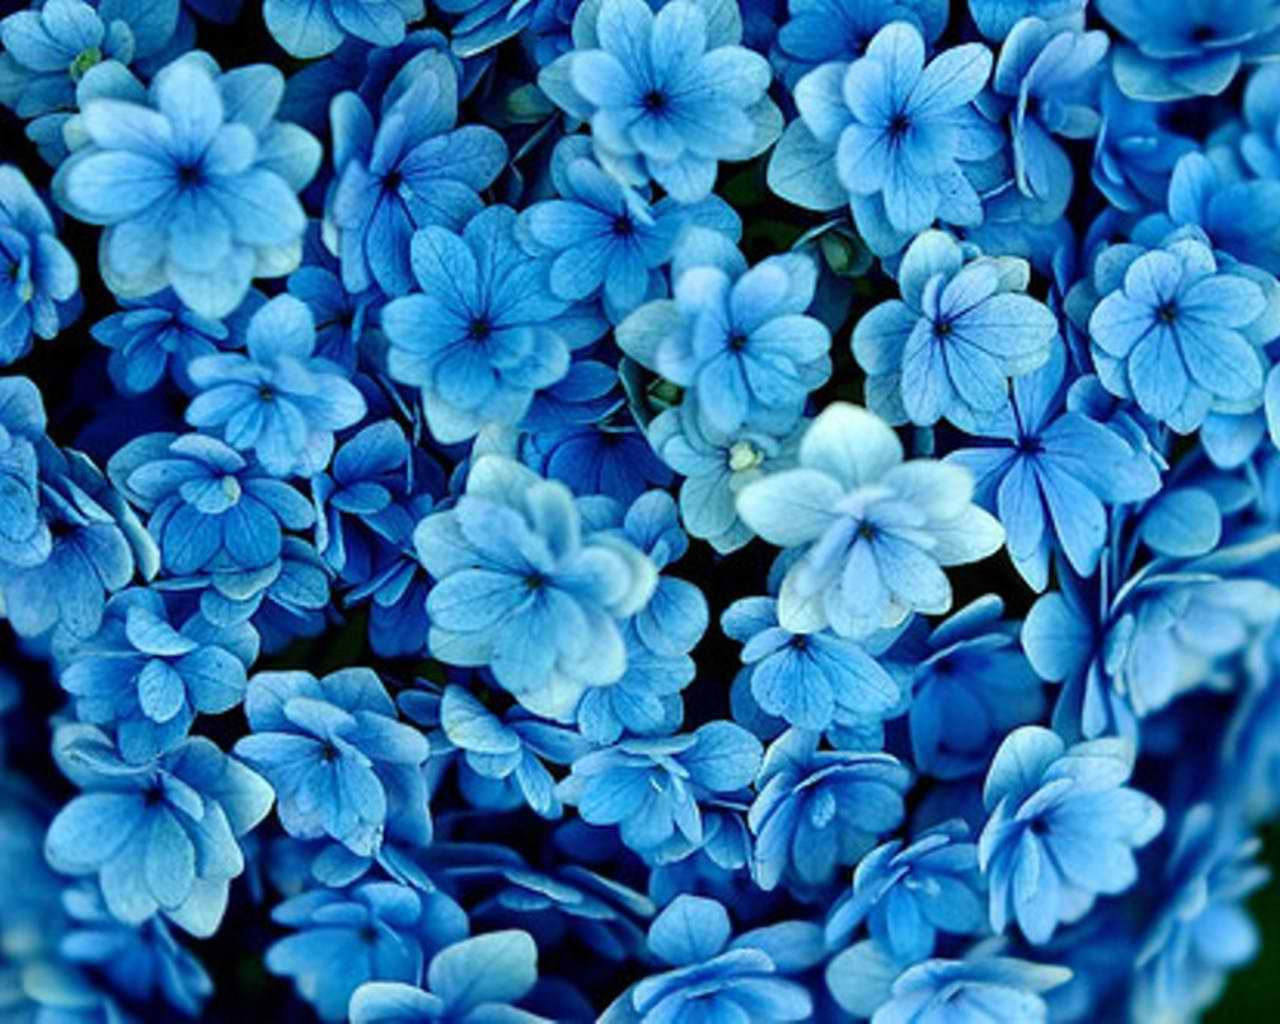 blue flowers | blue flowers wallpaper | wallpaper, wallpaper hd